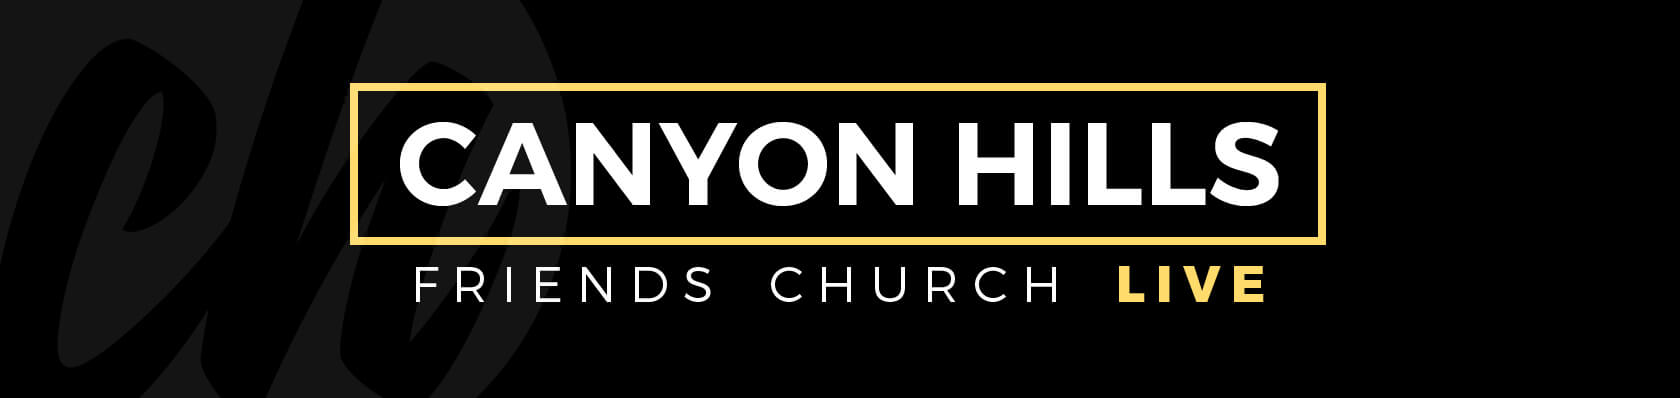 Live Services at Canyon Hills Friends Church